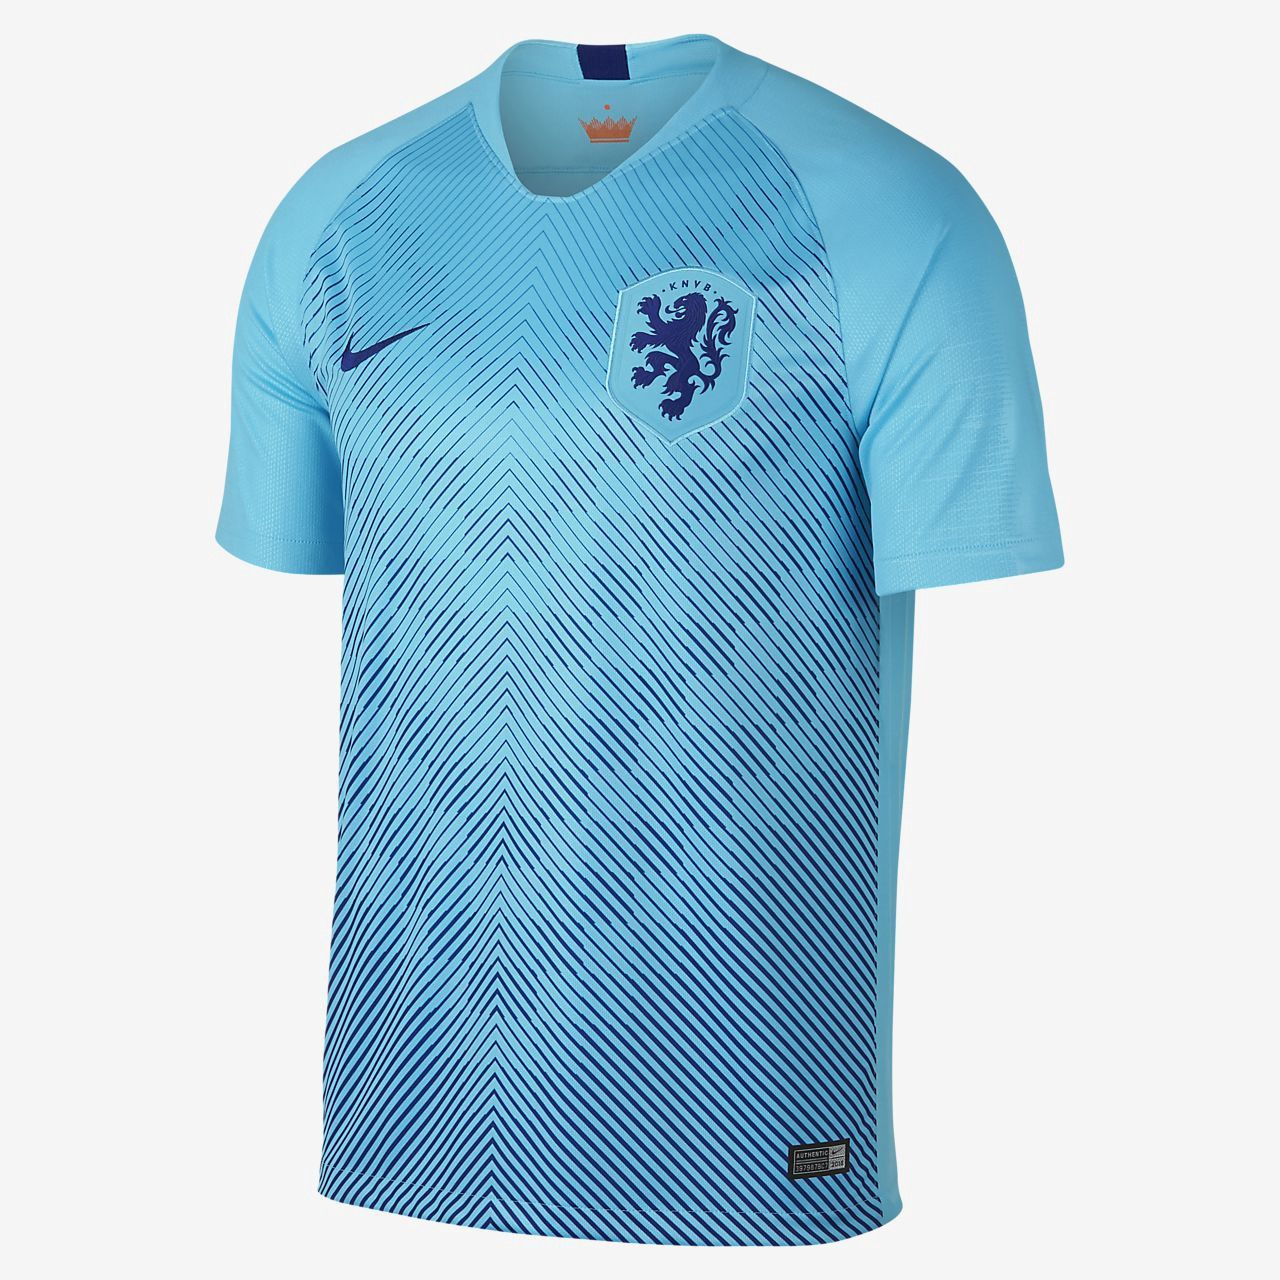 2bb5bf18c7f72 Nike 2018 Netherlands Stadium Away Men s Soccer Jersey - 2XL Blue   men ssoccer